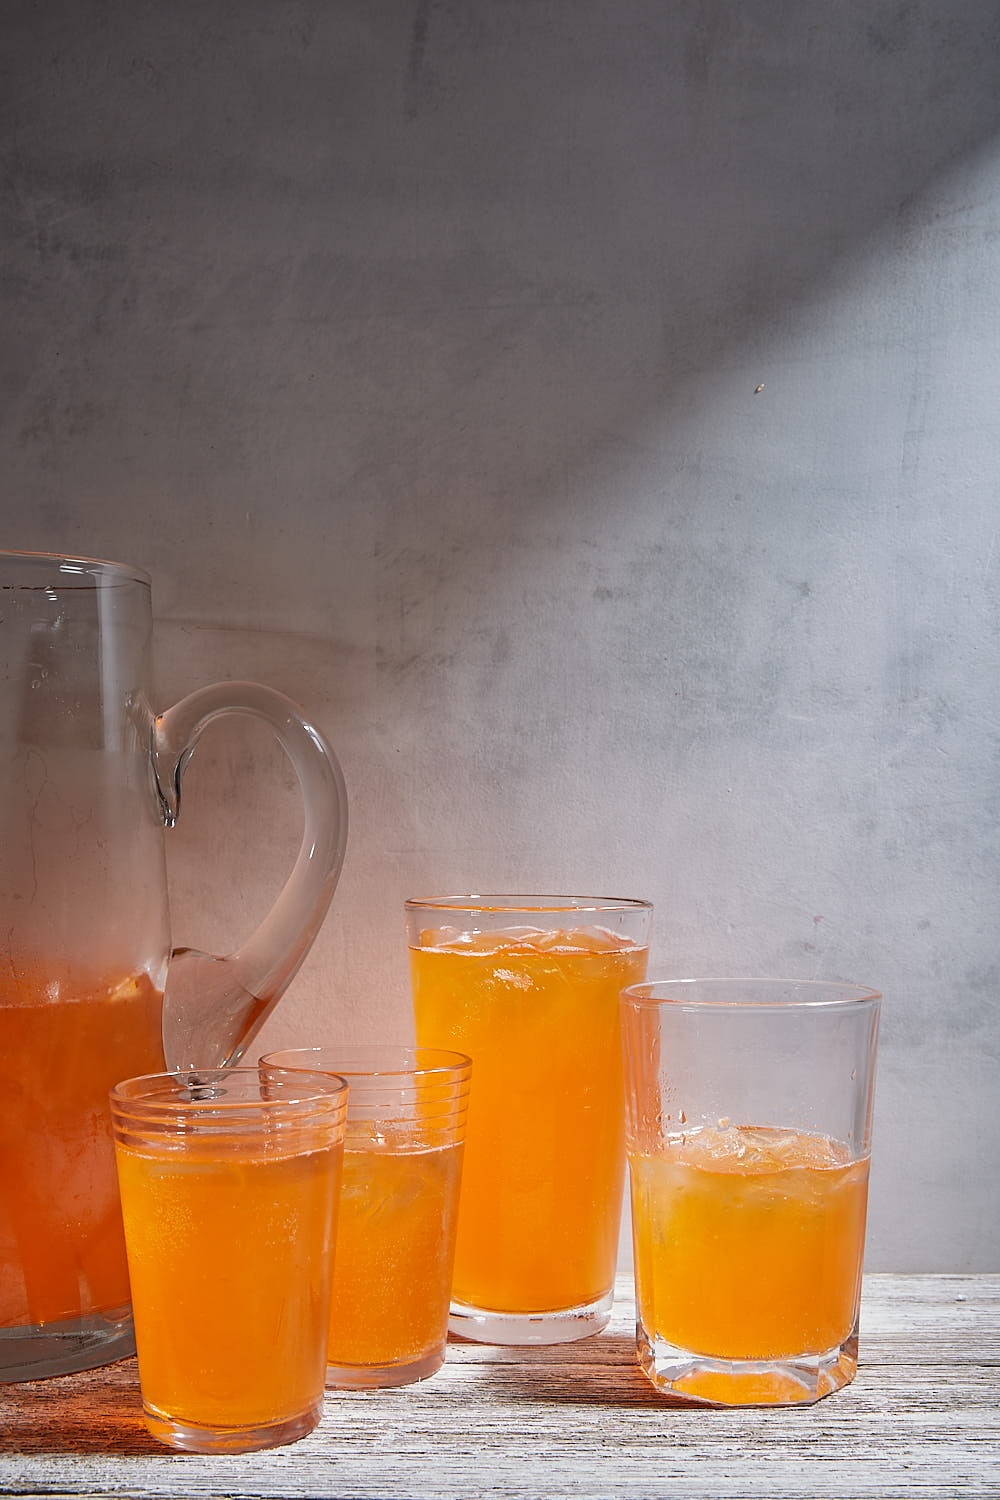 PitcherOrangeade